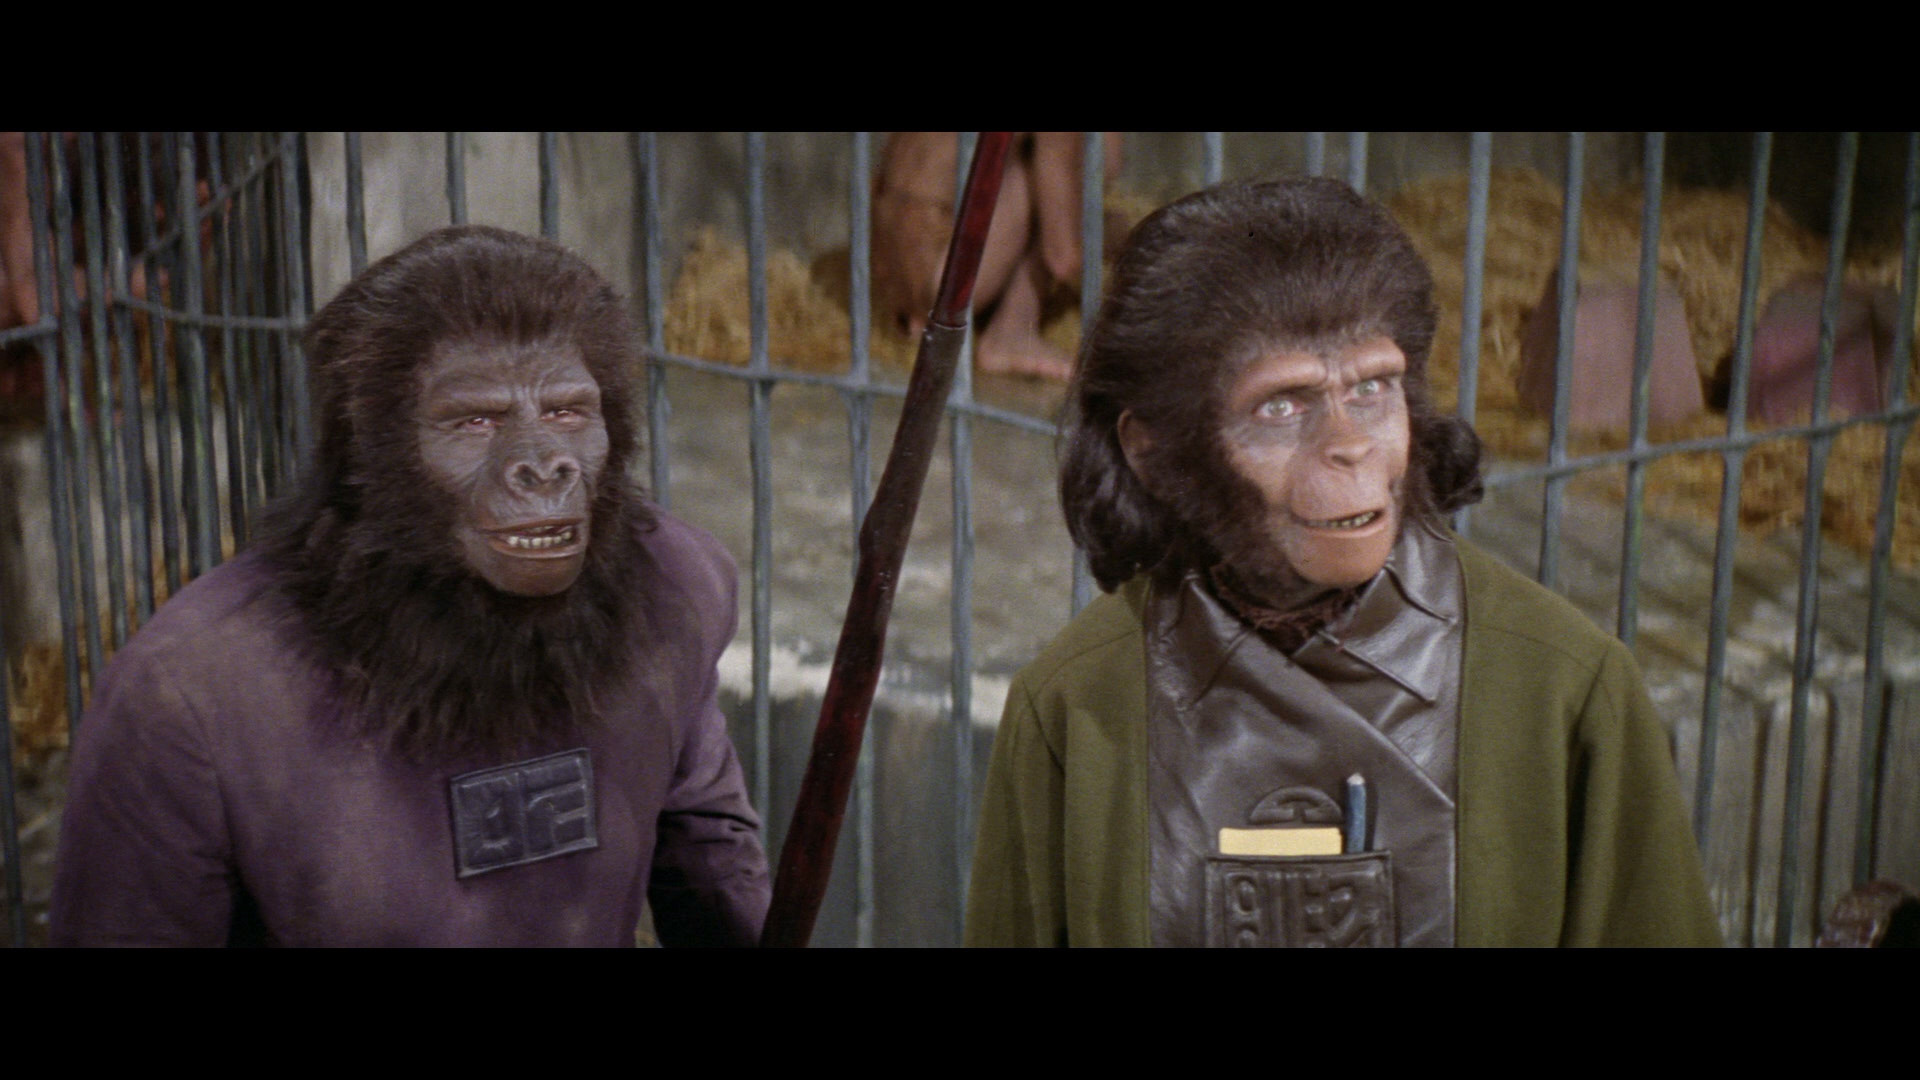 Planet Of The Apes Backgrounds, Compatible - PC, Mobile, Gadgets| 1920x1080 px